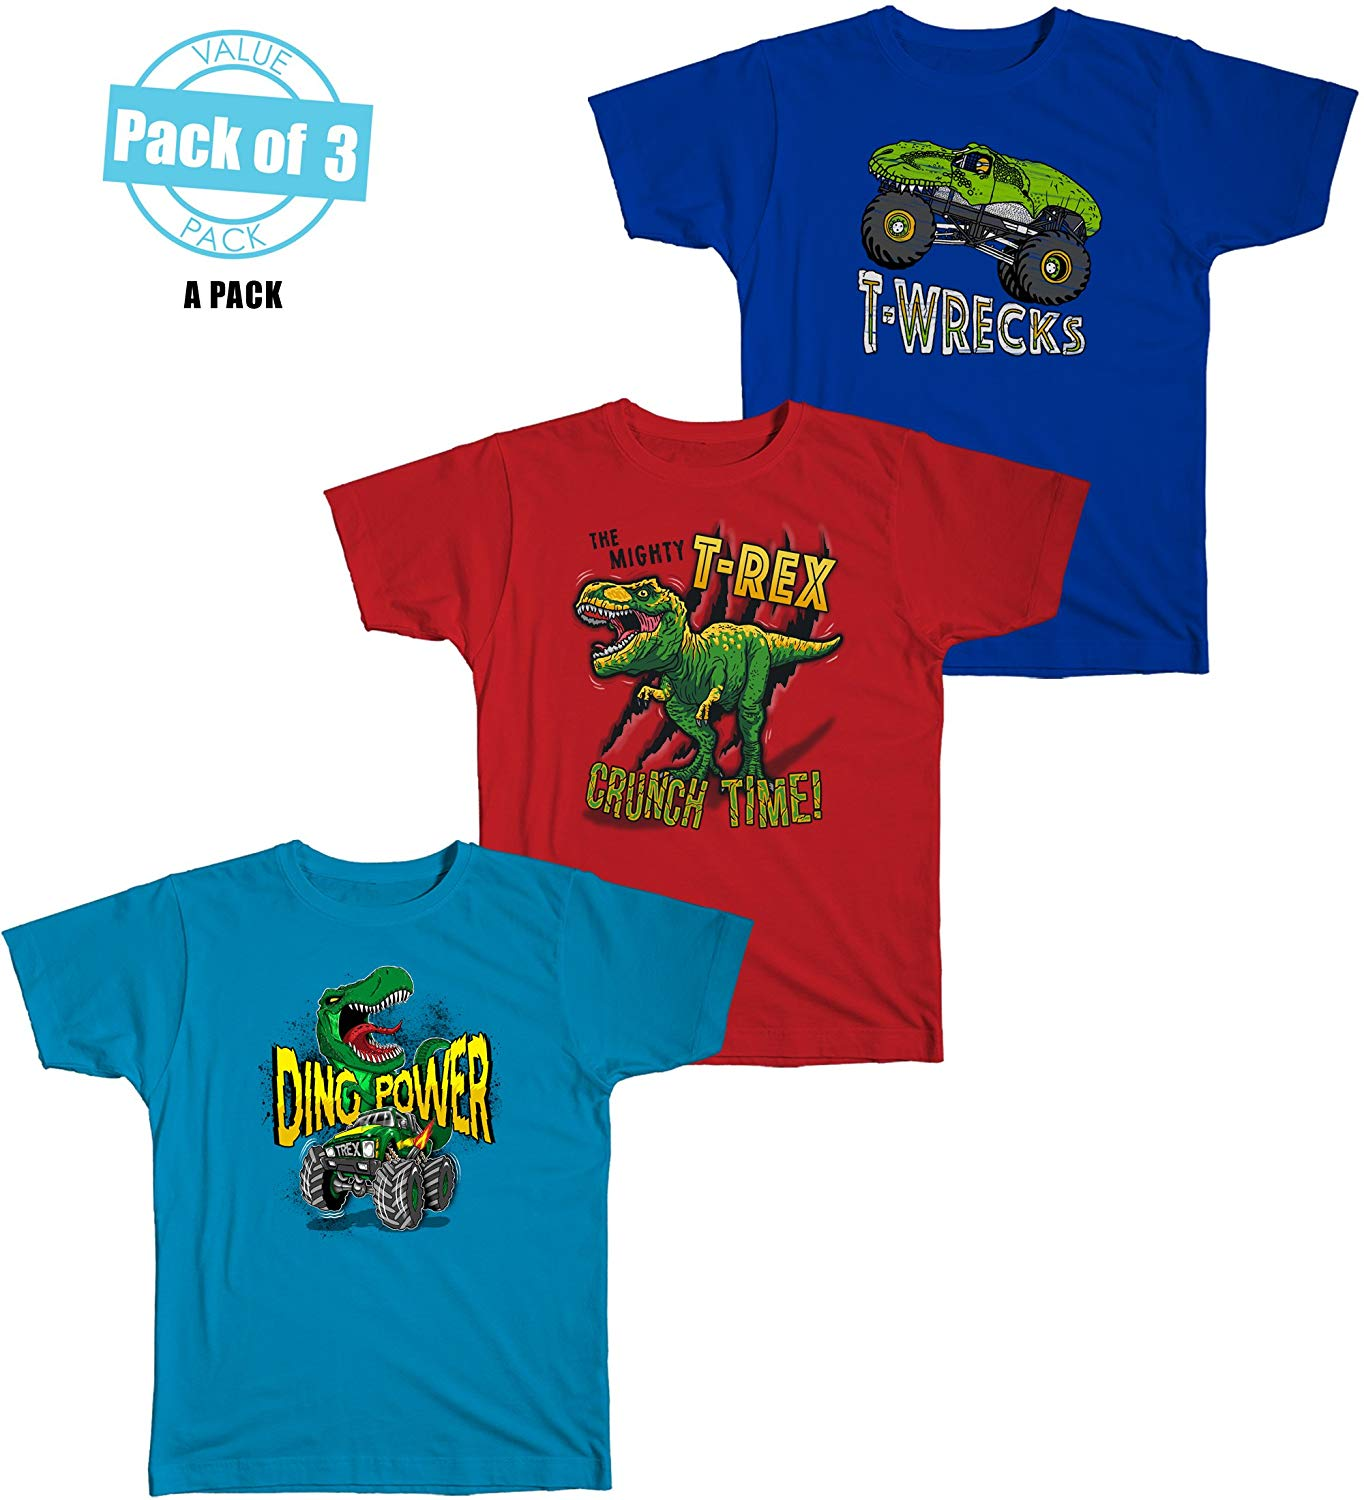 f206b9b3 Get Quotations · Rude Boyz Dinosaur Themed Boy's Graphic Short Sleeve  T-Shirts Value Pack Of 3 (